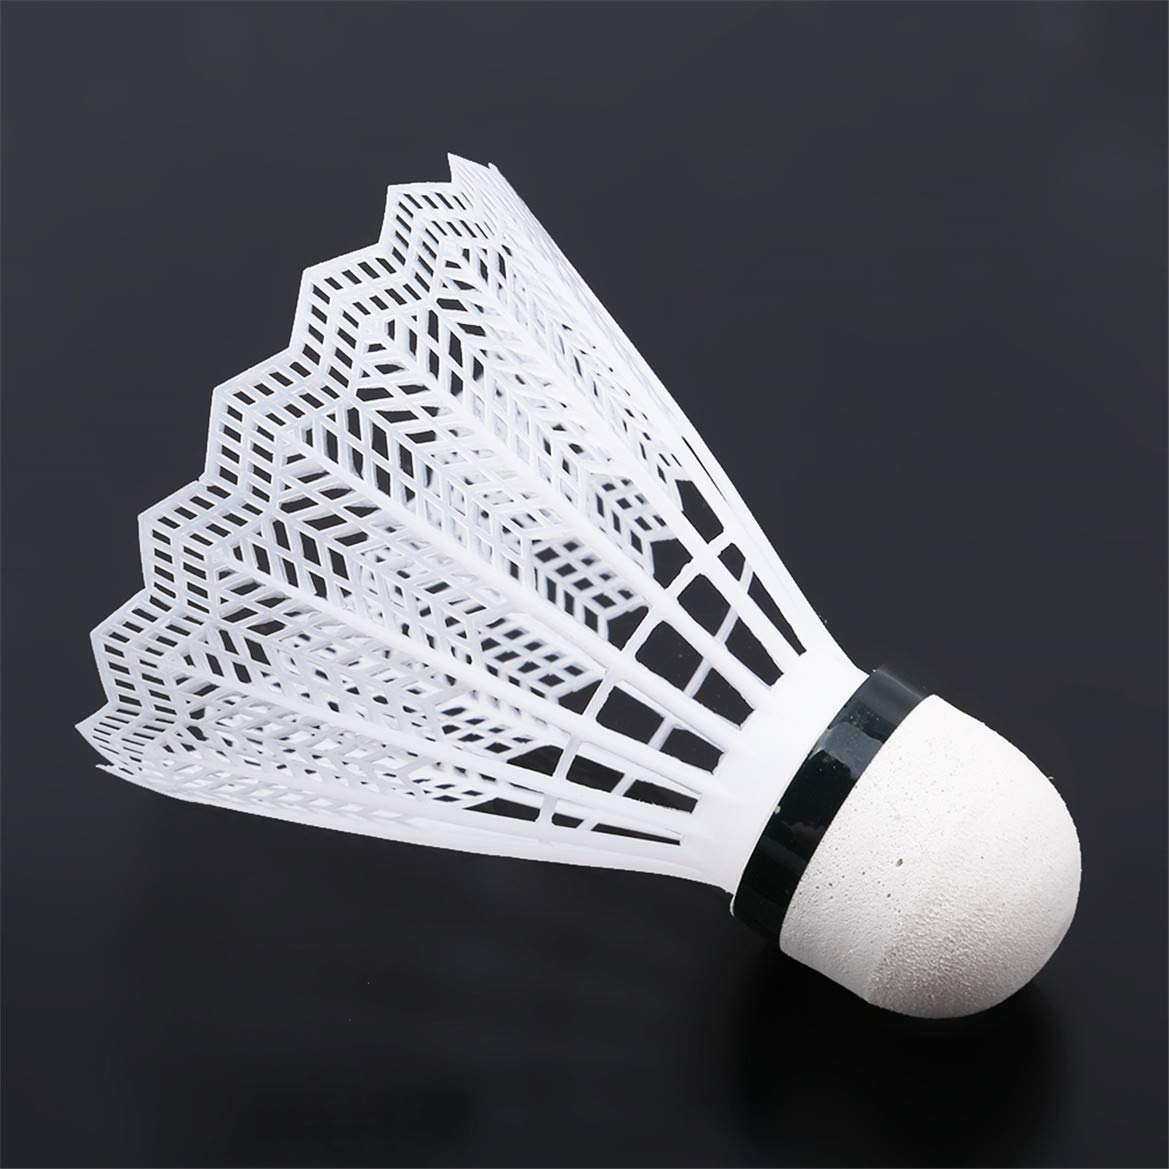 club and hobby players larum sports Badminton Shuttlecocks Feather Shuttlecock high durability and flight stability; perfect for training and practice